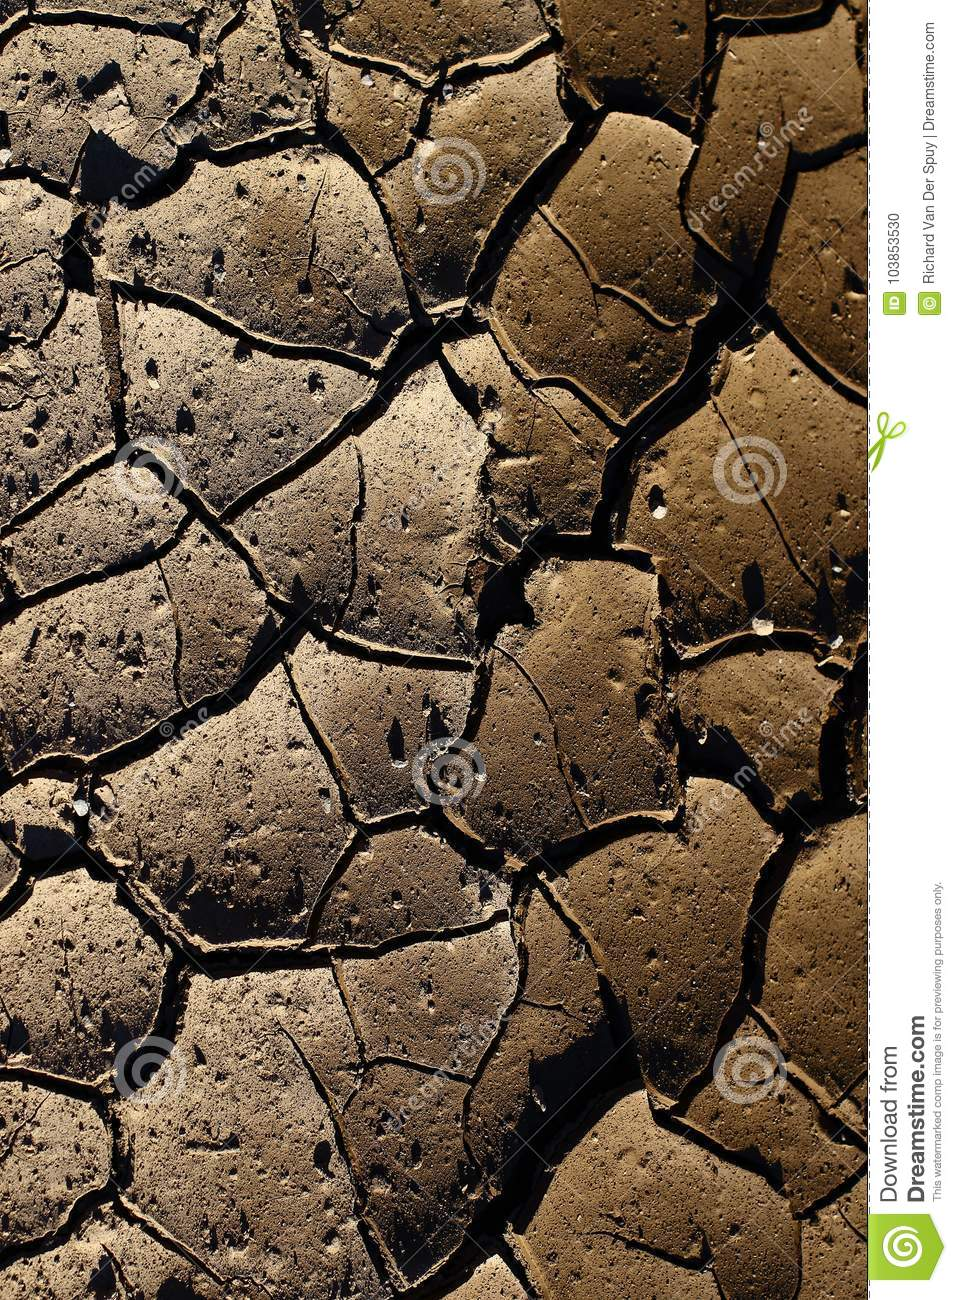 Cracked earth due to the heat from the sun